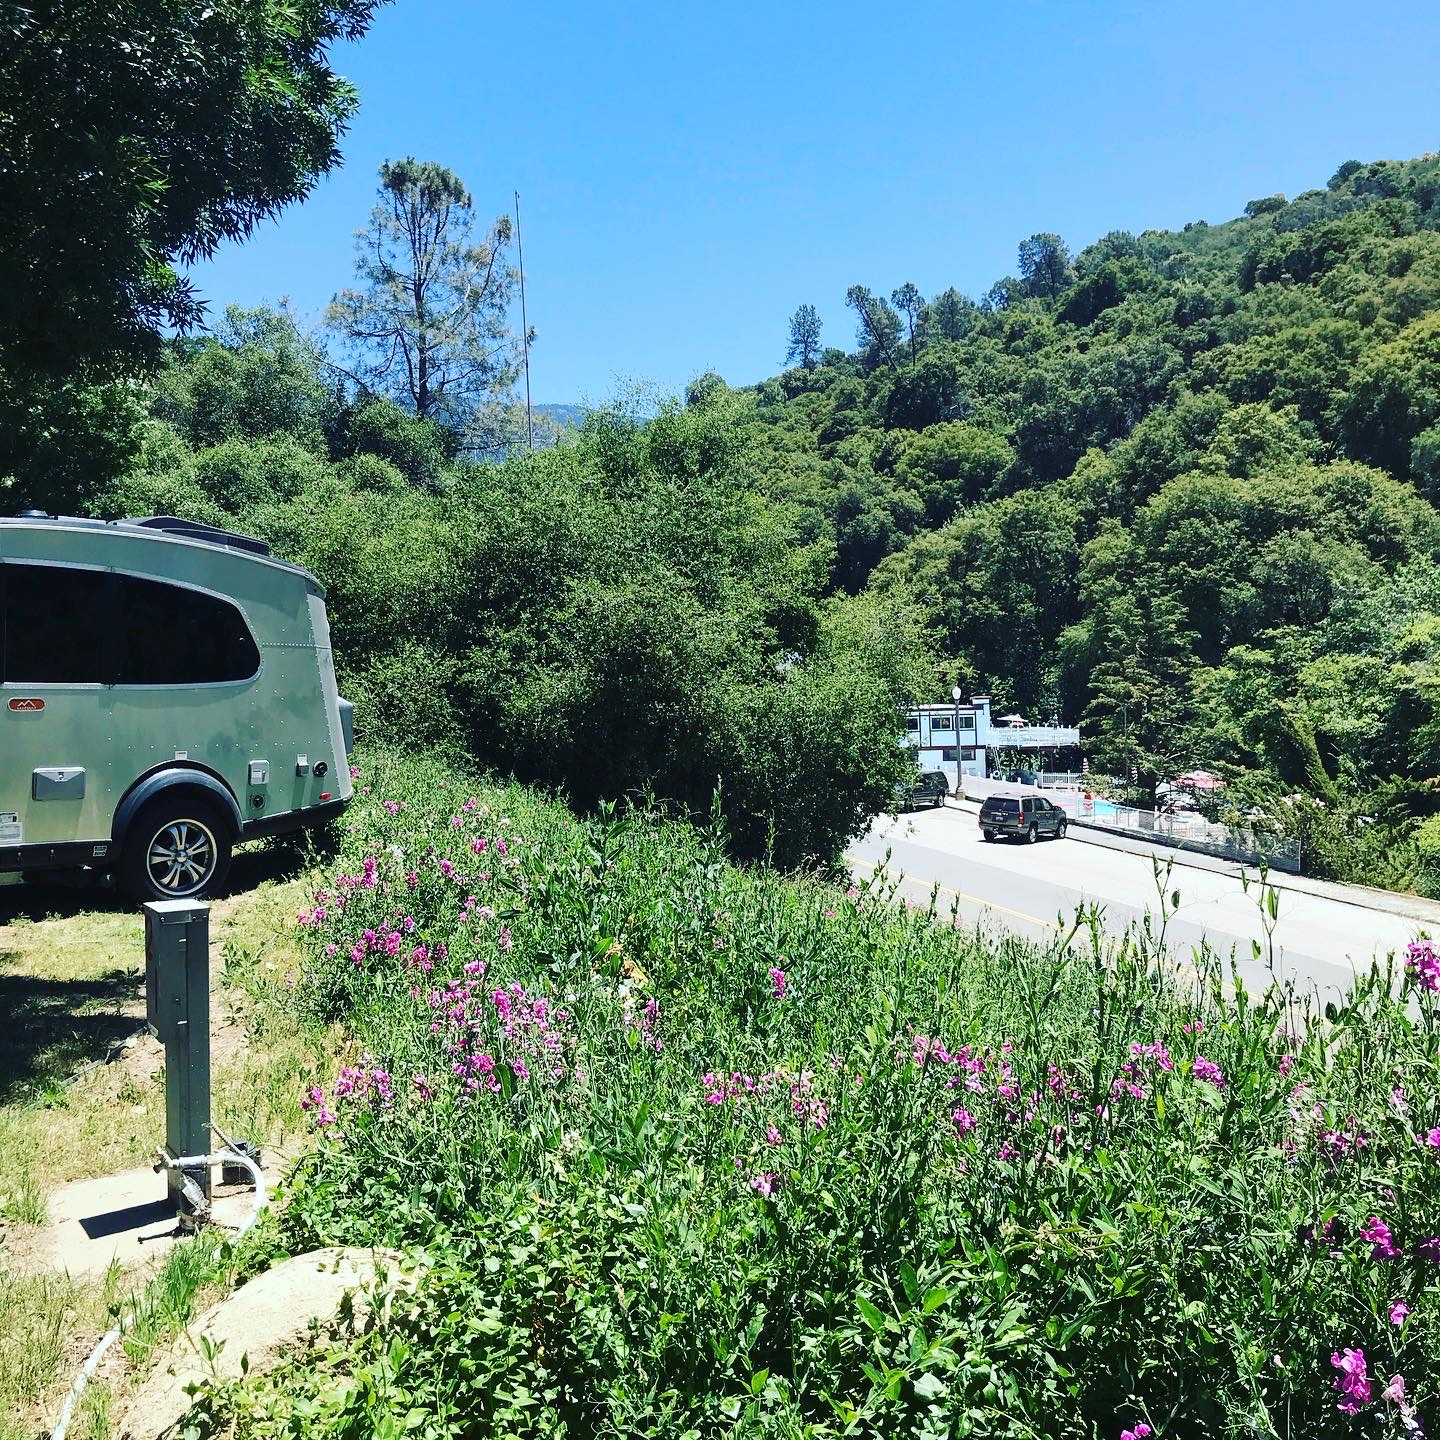 CA Hot Springs, Sequoia National Park. Airstream Base Camp 2018